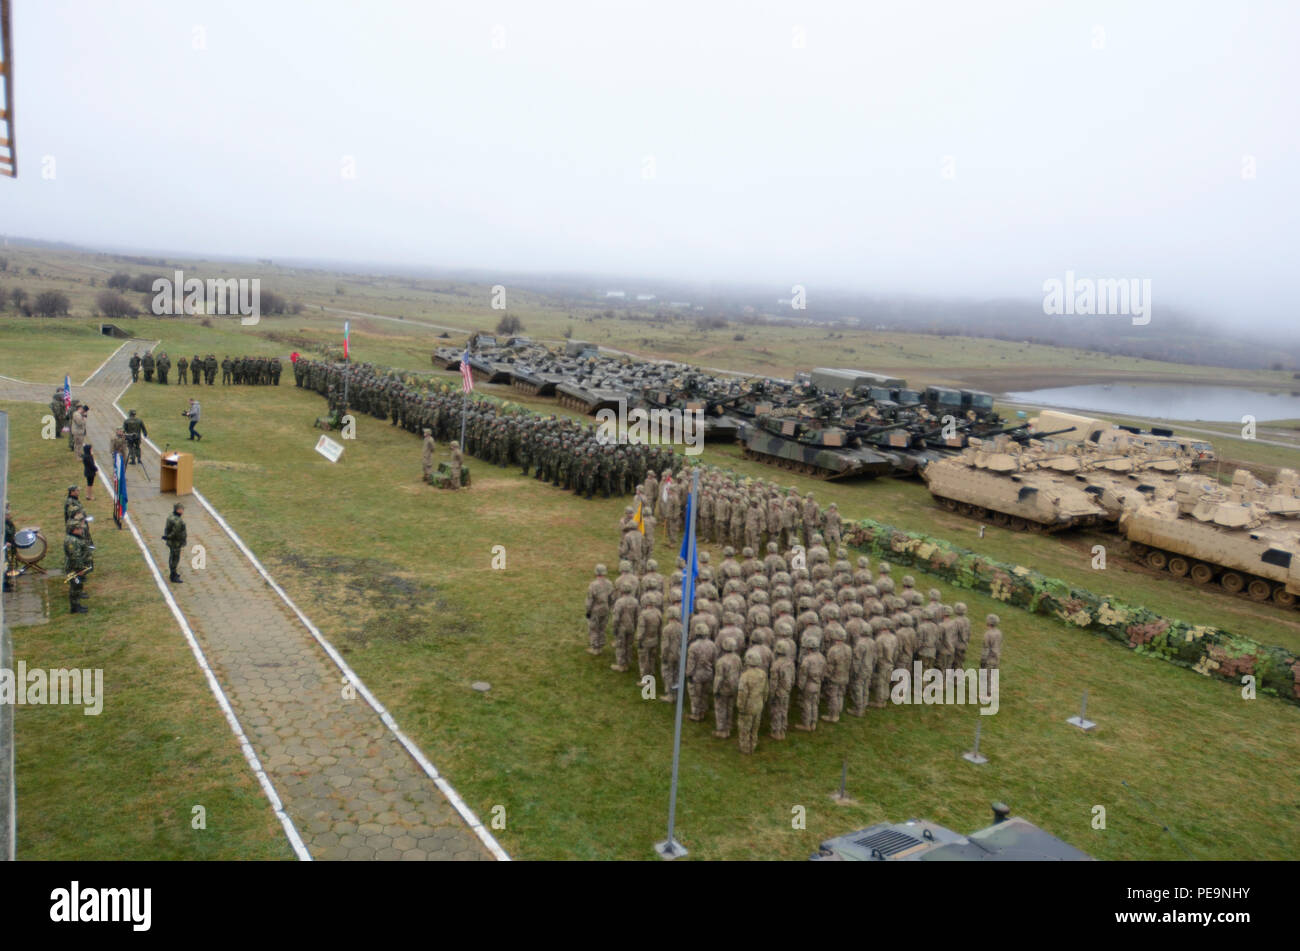 U.S. and Bulgarian Soldiers, along with their armored vehicles, form up for the closing ceremony of Exercise Peace Sentinel at Novo Selo Training Center, Bulgaria, Nov. 24, 2015. (U.S. Army photo by Staff Sgt. Steven M. Colvin/Released) - Stock Image